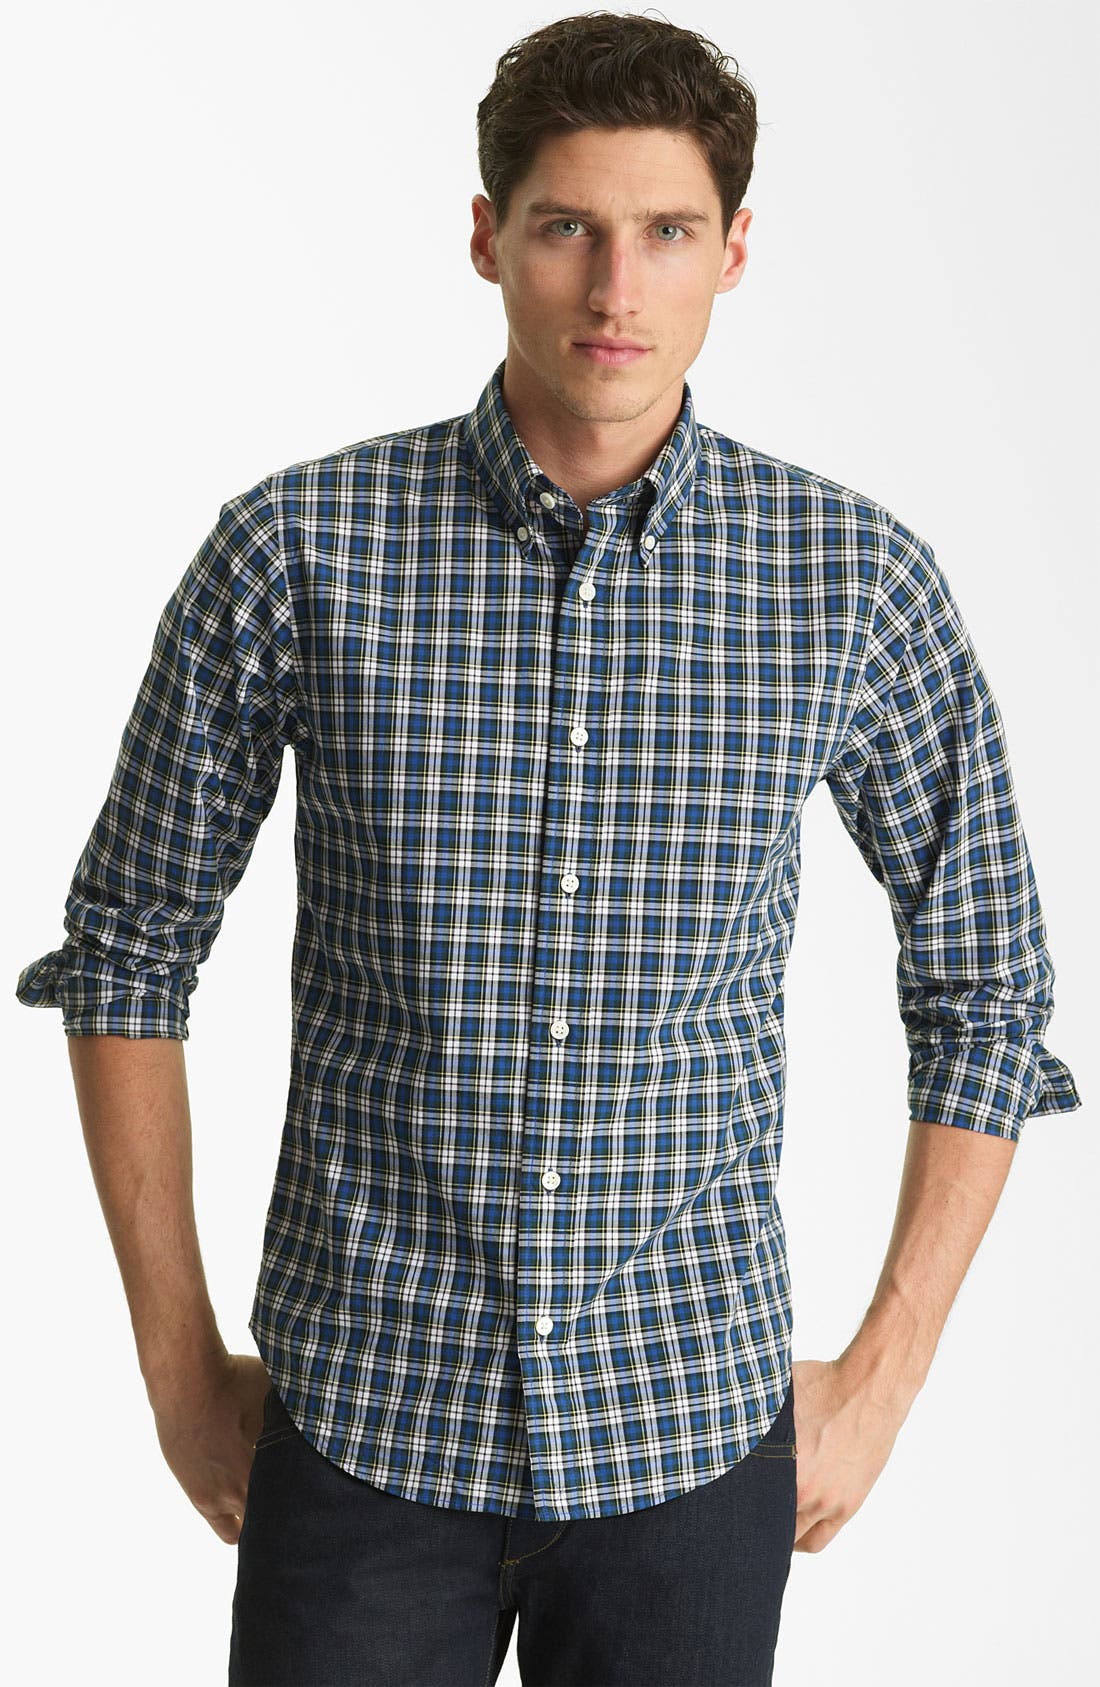 Alternate Image 1 Selected - Jack Spade 'Gibson' Plaid Woven Shirt